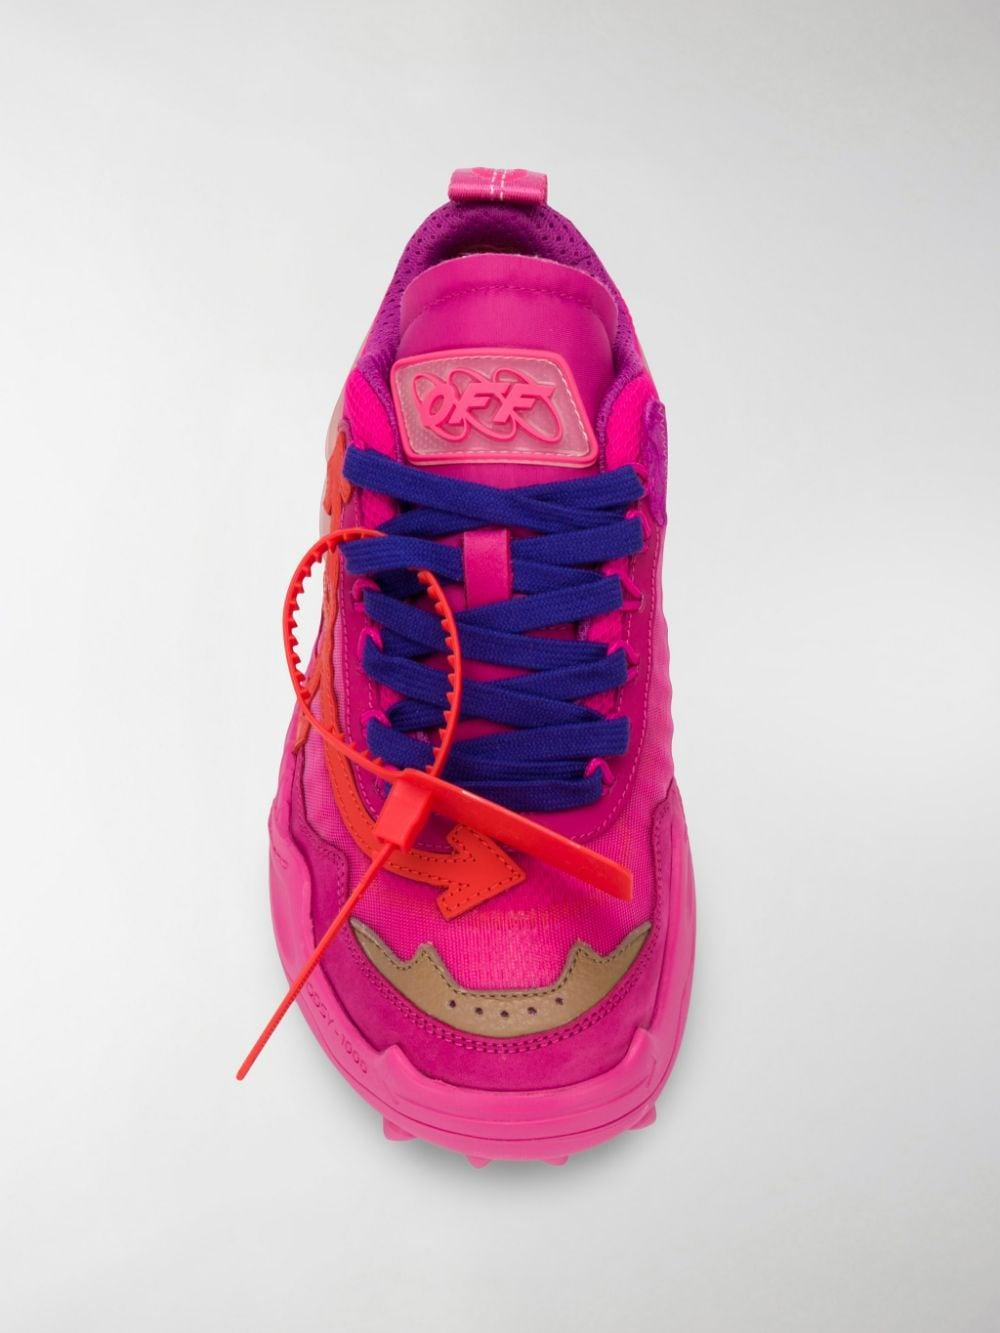 Fuchsia Odsy-1000 Sneakers in Pink